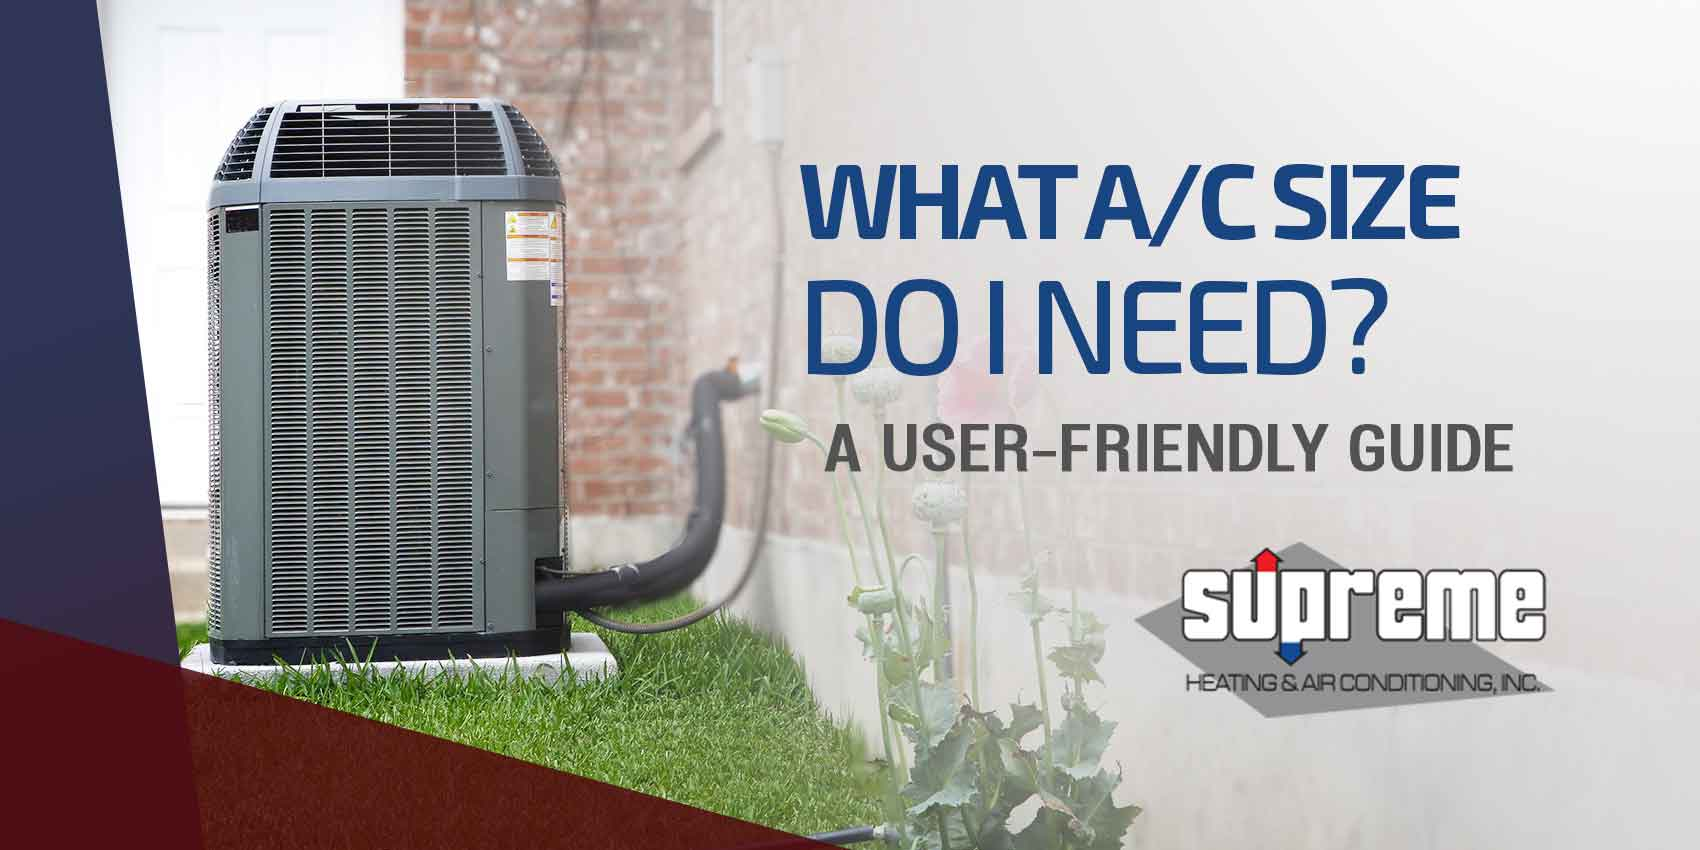 What A/C Size Do I Need? A User-Friendly Guide